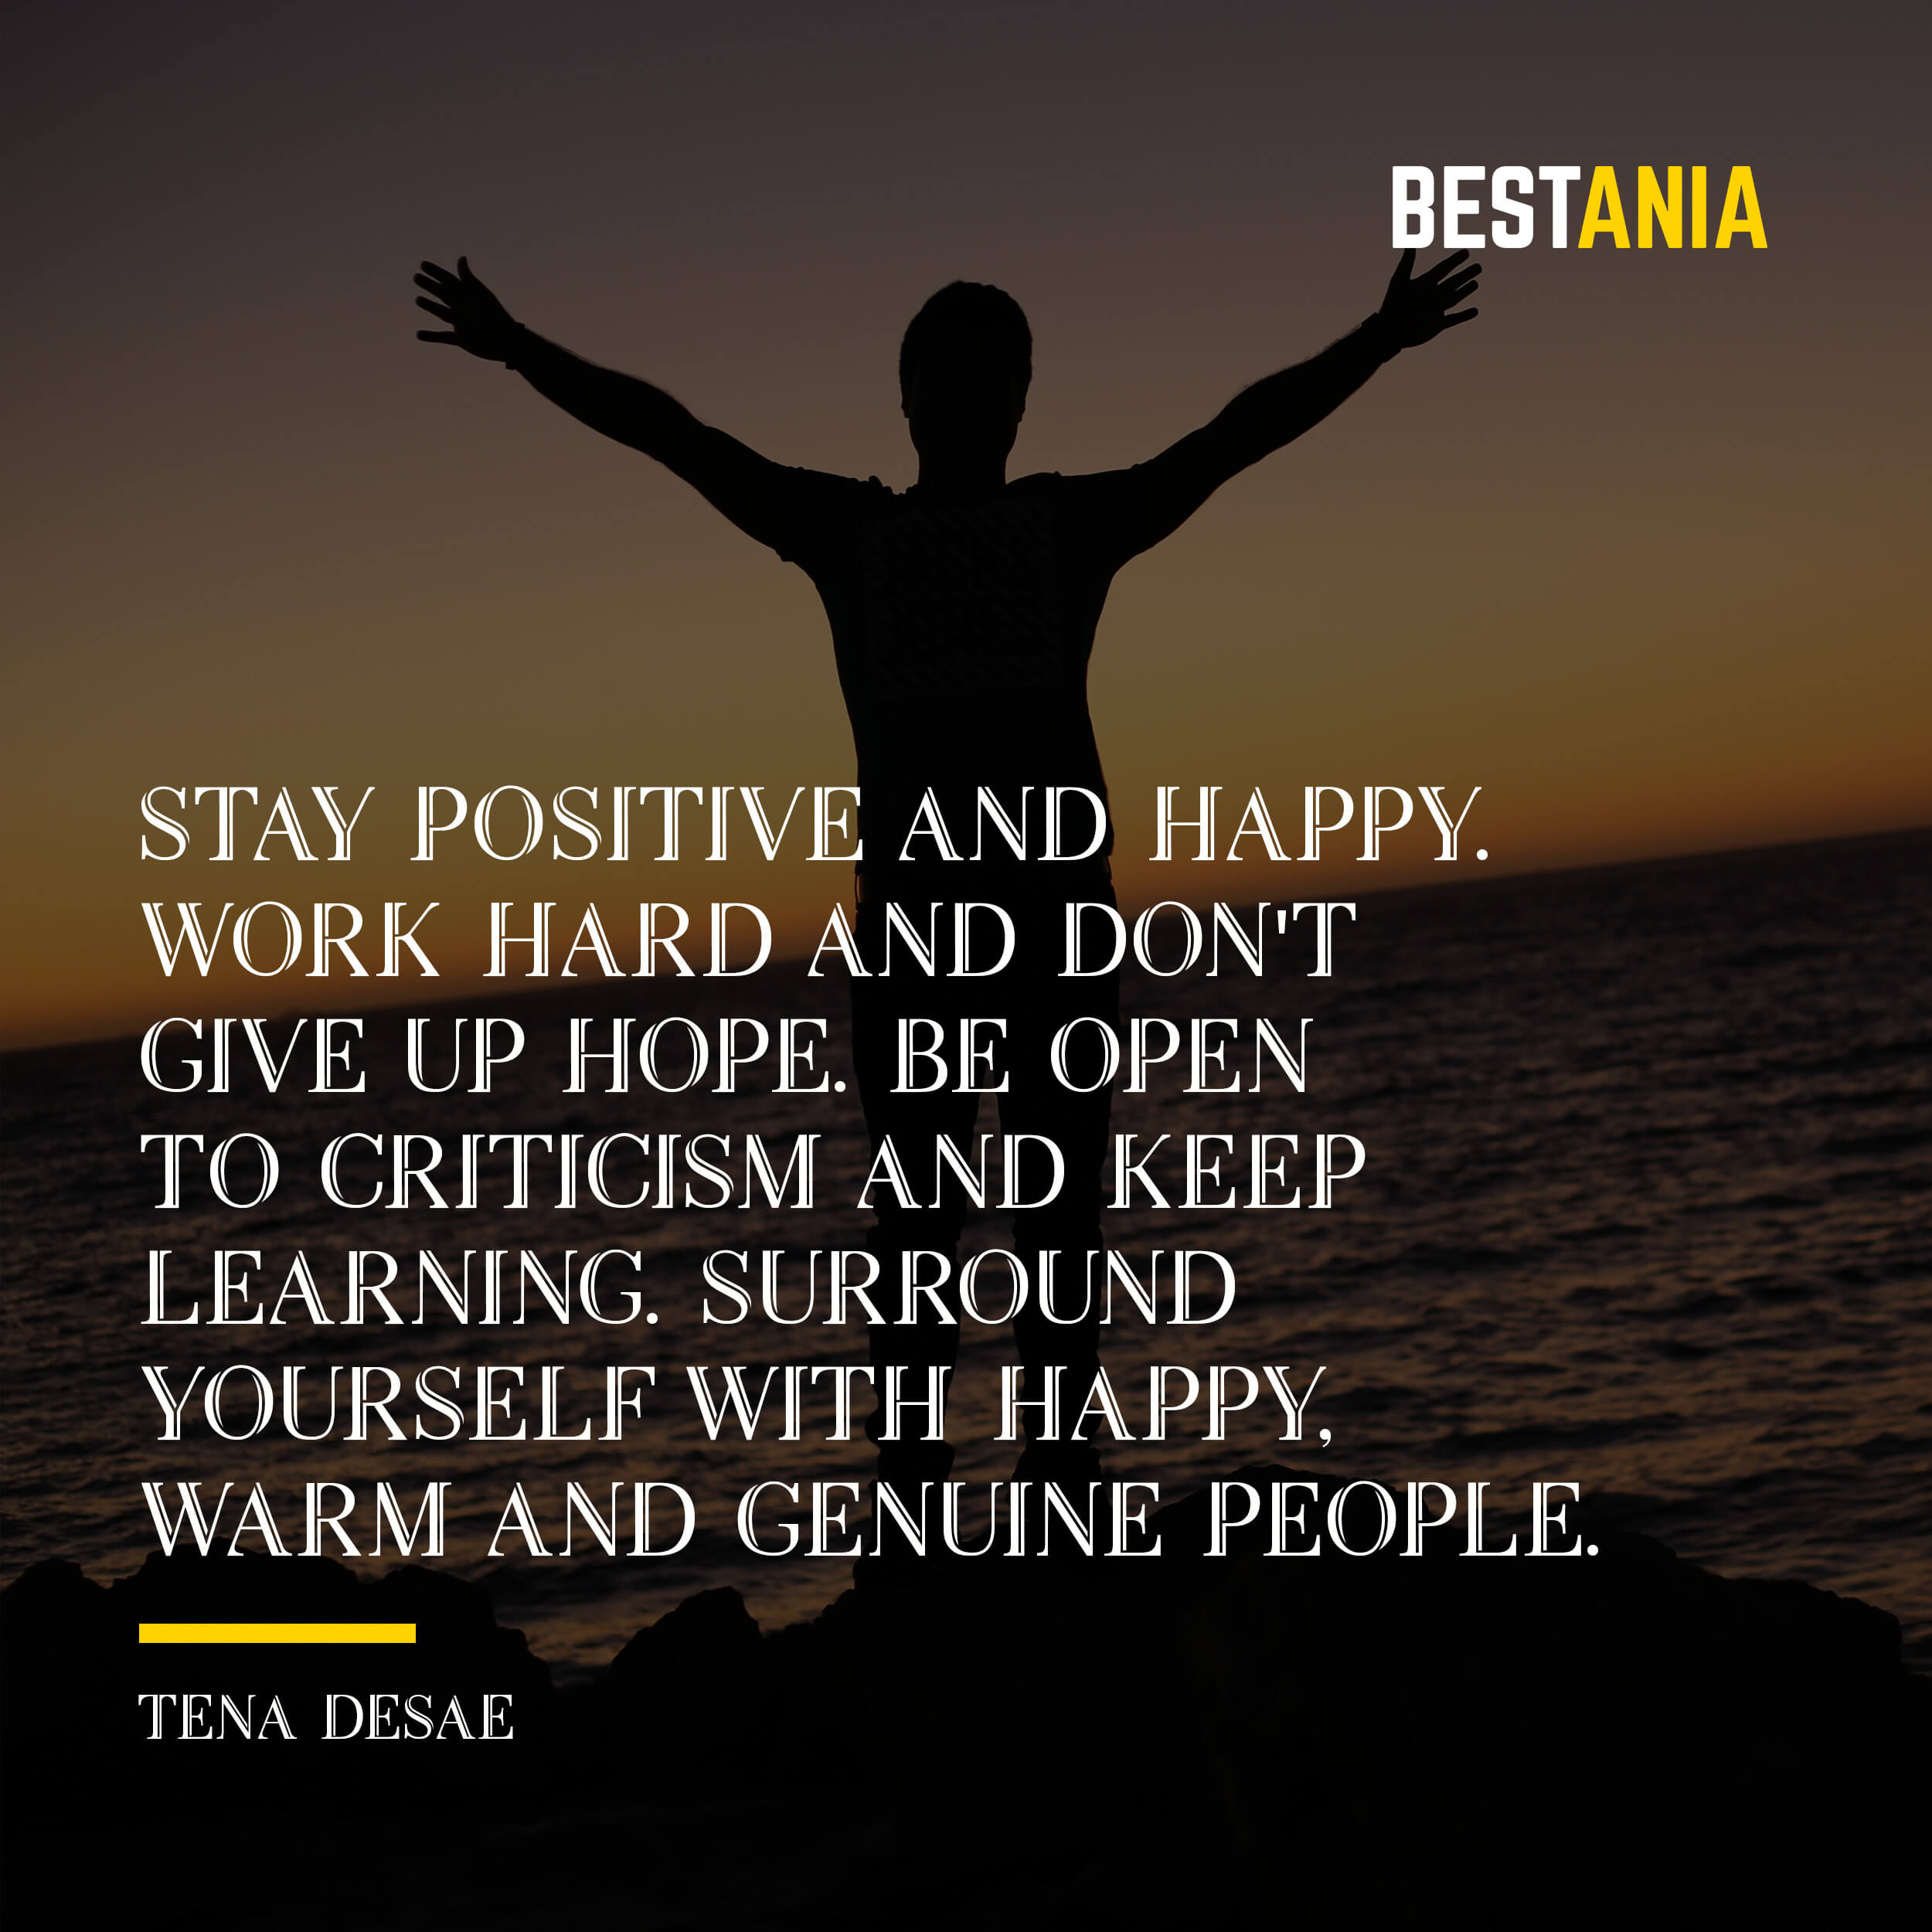 """STAY POSITIVE AND HAPPY. WORK HARD AND DON'T GIVE UP HOPE. BE OPEN TO CRITICISM AND KEEP LEARNING. SURROUND YOURSELF WITH HAPPY, WARM AND GENUINE PEOPLE."" TENA DESAE"